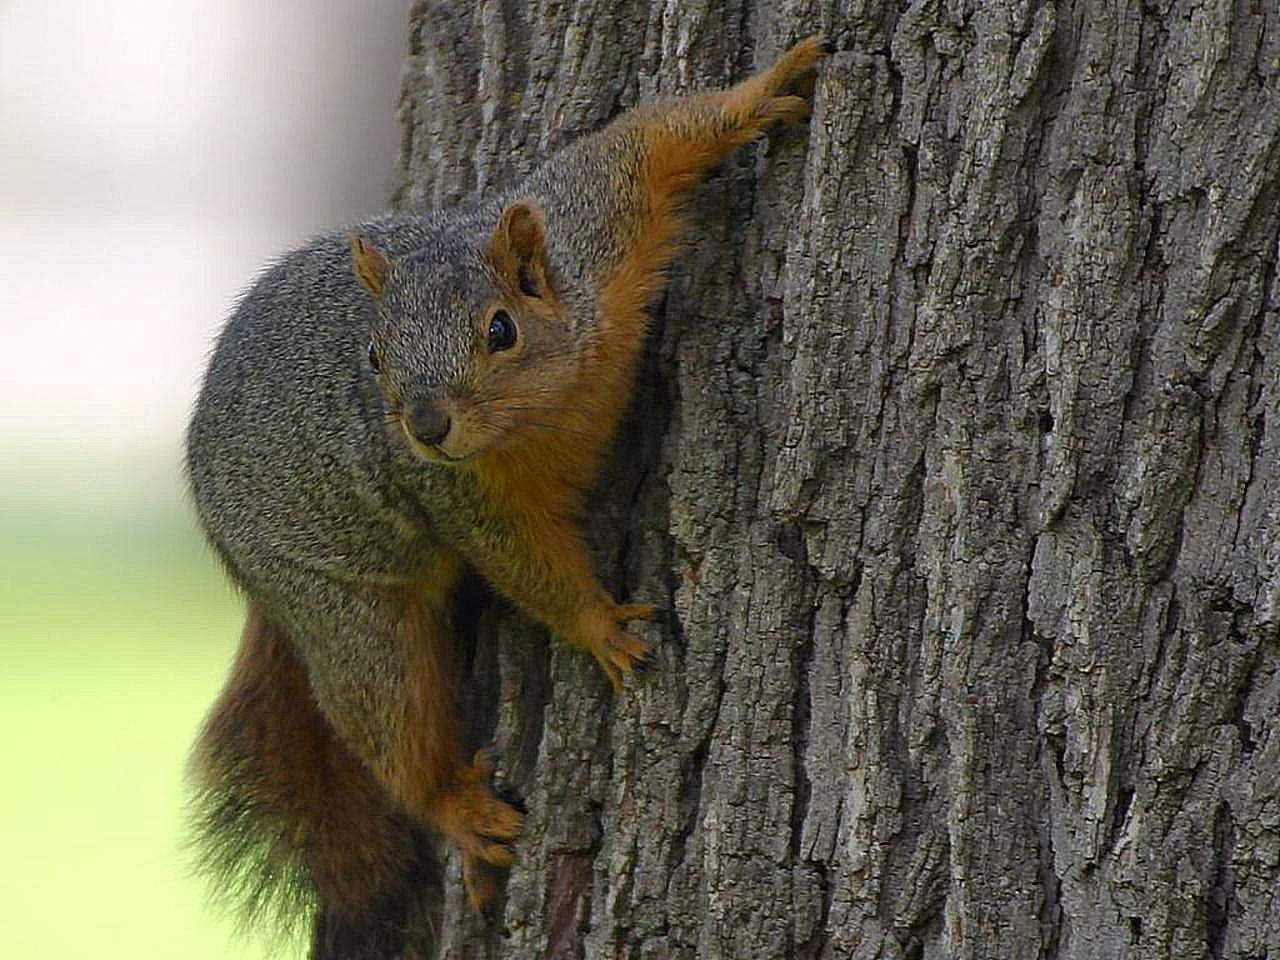 A picture of a squirrel climbing a tree.